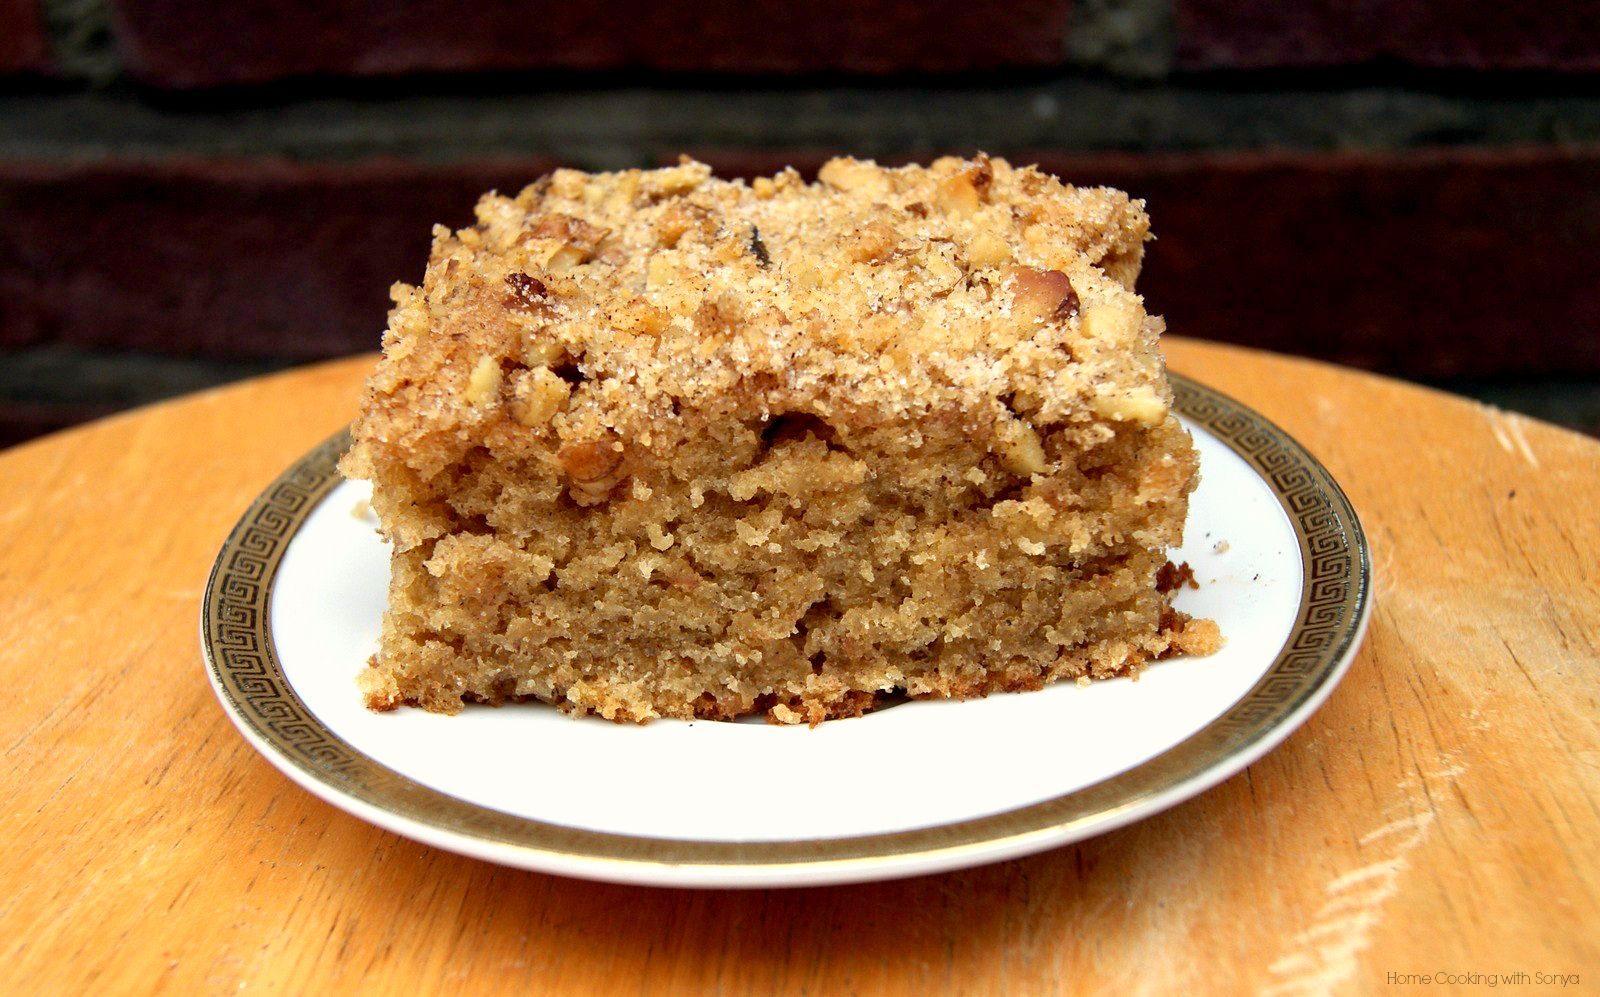 41f33fe923063be4a71d741c116207c4 - Better Homes And Gardens Coffee Cake Recipe